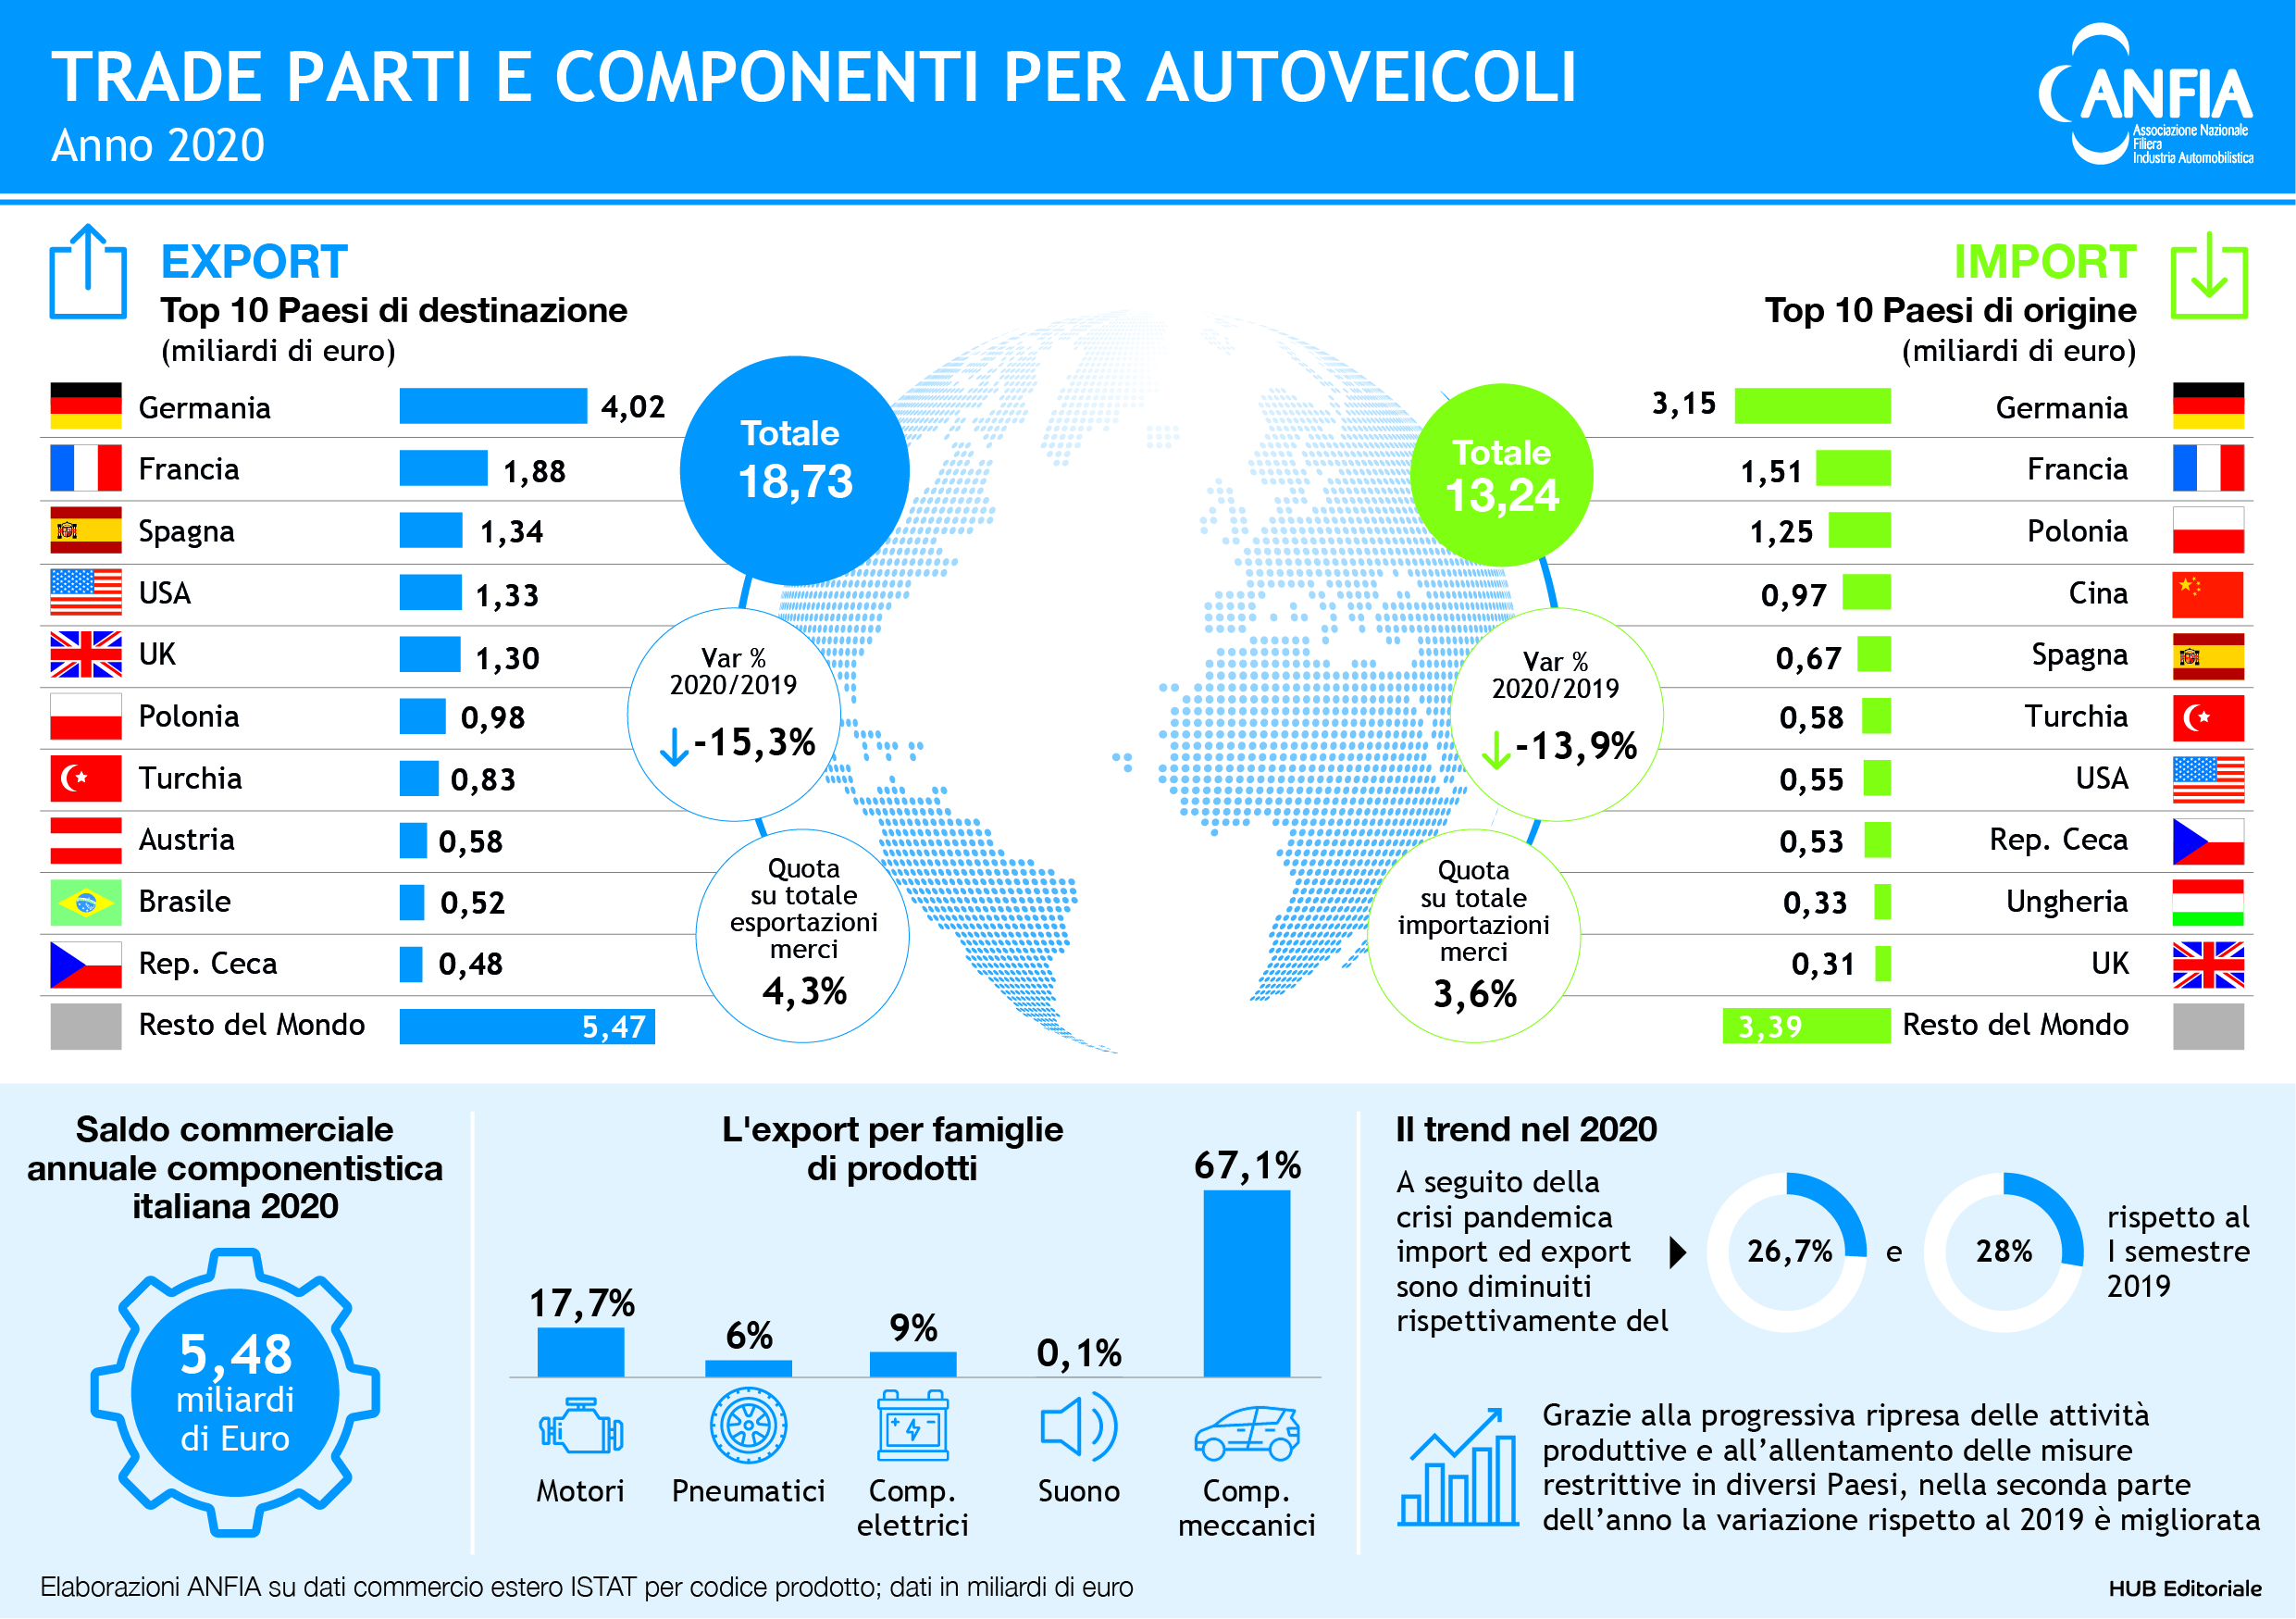 Export componentistica automotive Italia 2020